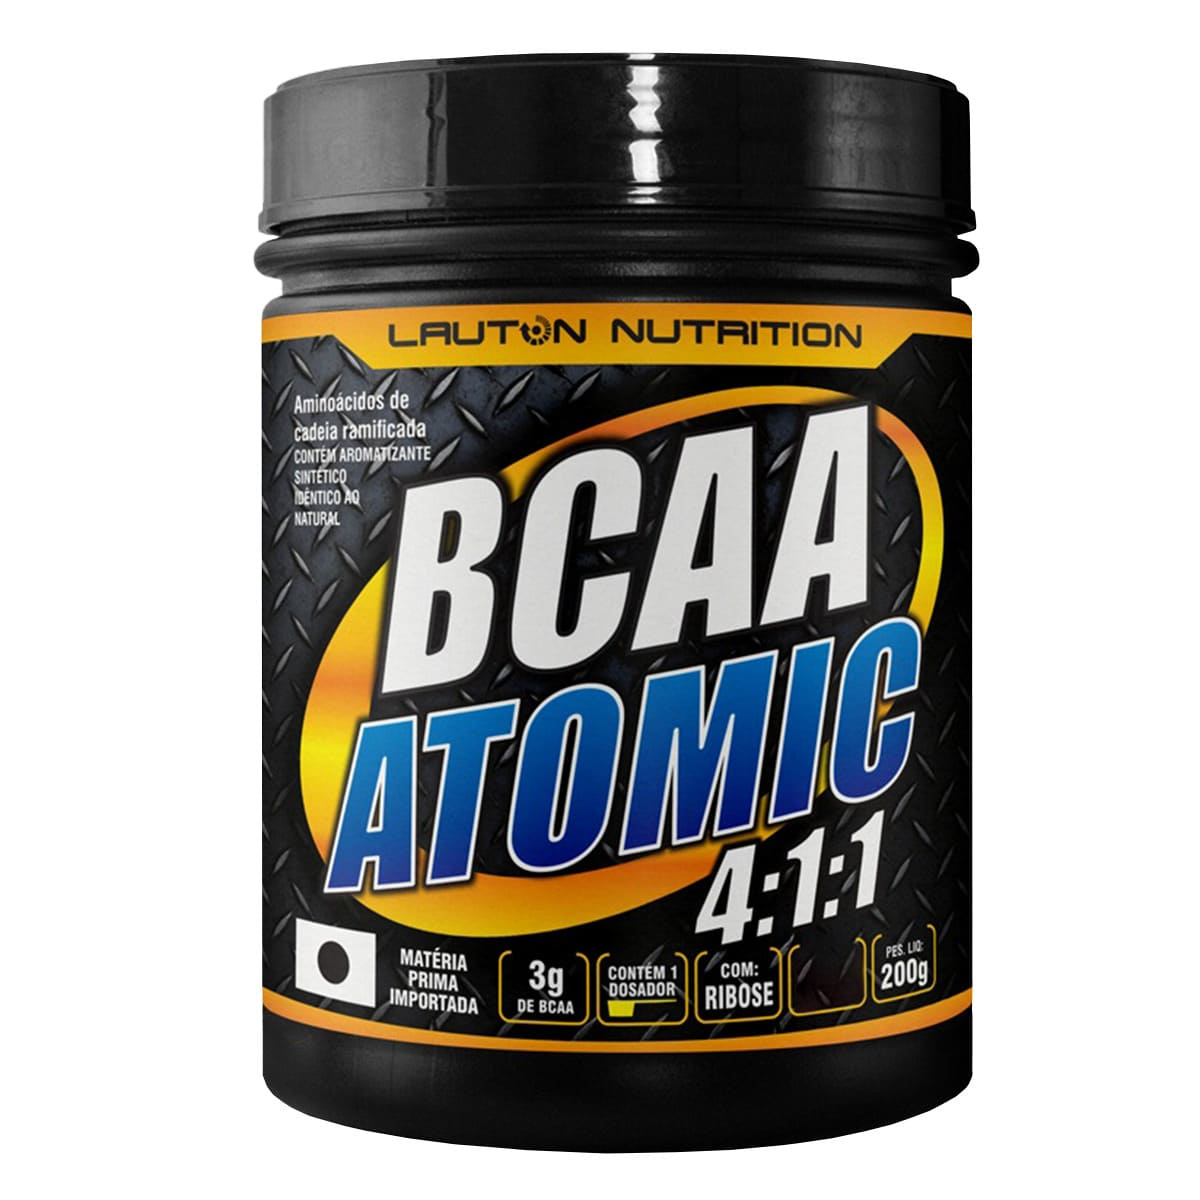 BCAA Atomic 4:1:1 200g - Lauton Nutrition